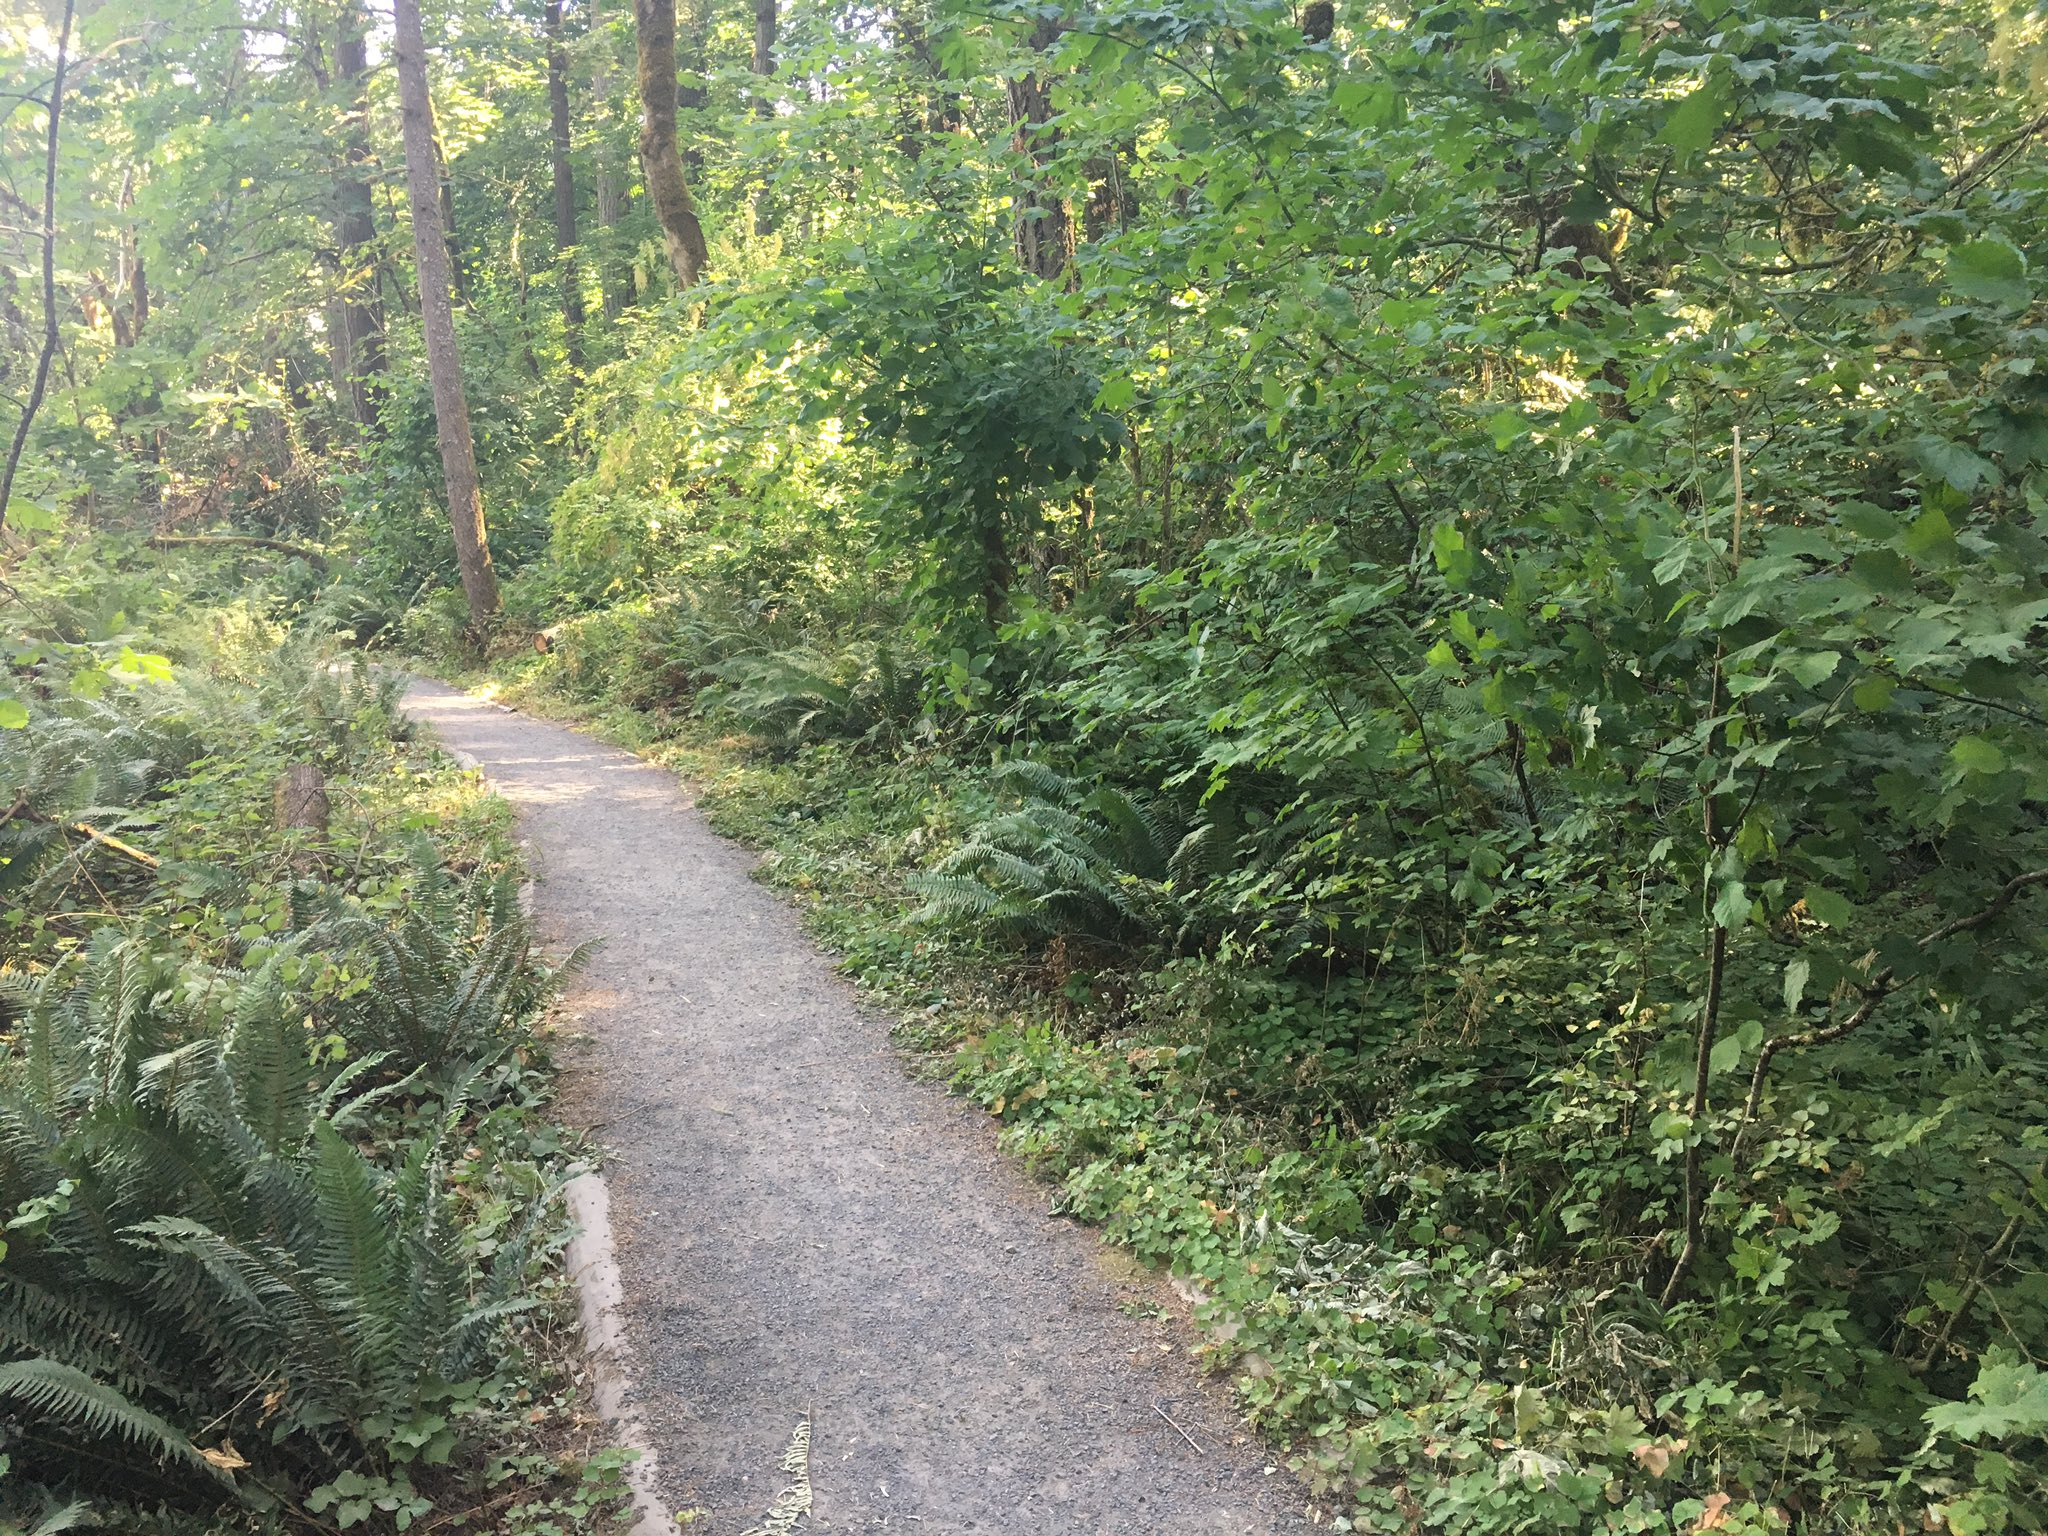 Police man exposed himself to woman on ridgeline trail in eugene kmtr the man exposed himself to the woman around 843 pm july 18 on the publicscrutiny Images